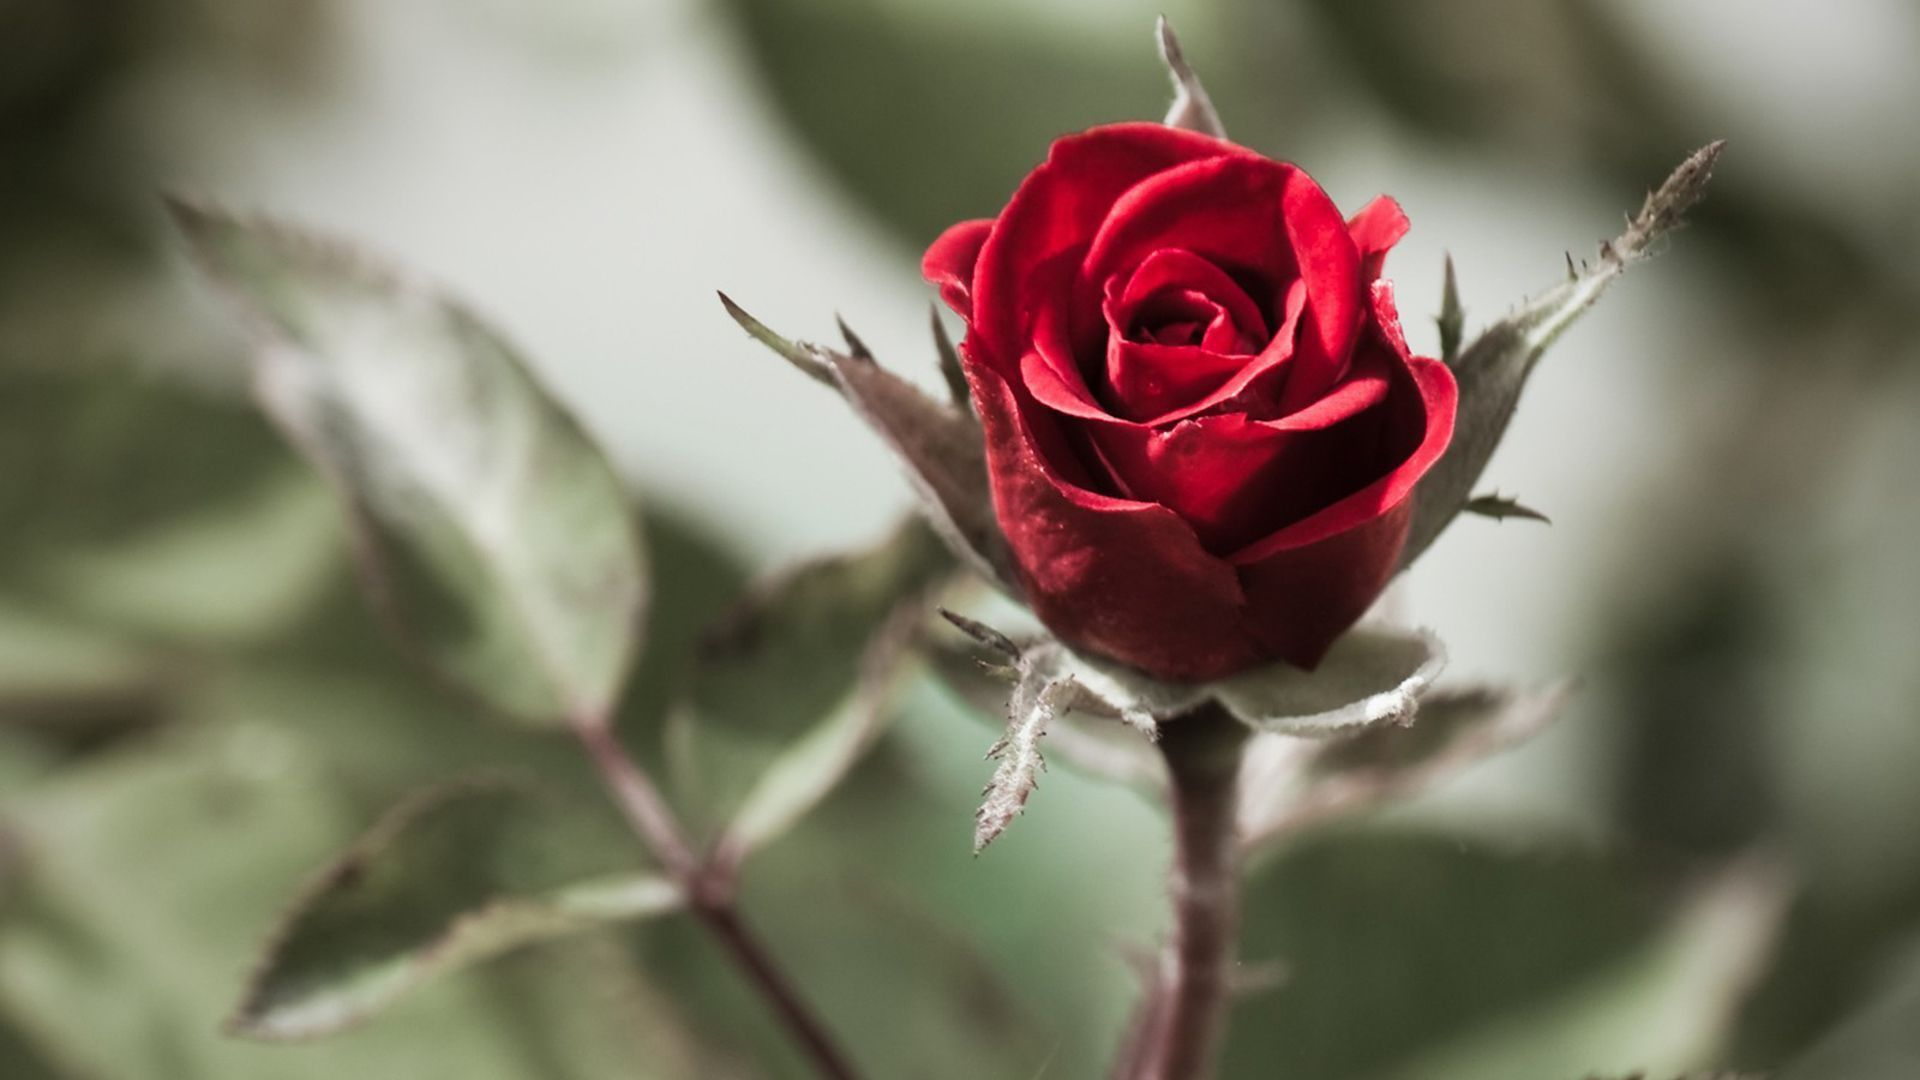 Red Rose Images Hd Wallpapers Photos Pictures Love Wallpaper 1080p Nature Wallpaper Rose Rose Flower Wallpaper Red Rose Images Hd Full hd red rose hd wallpapers 1080p